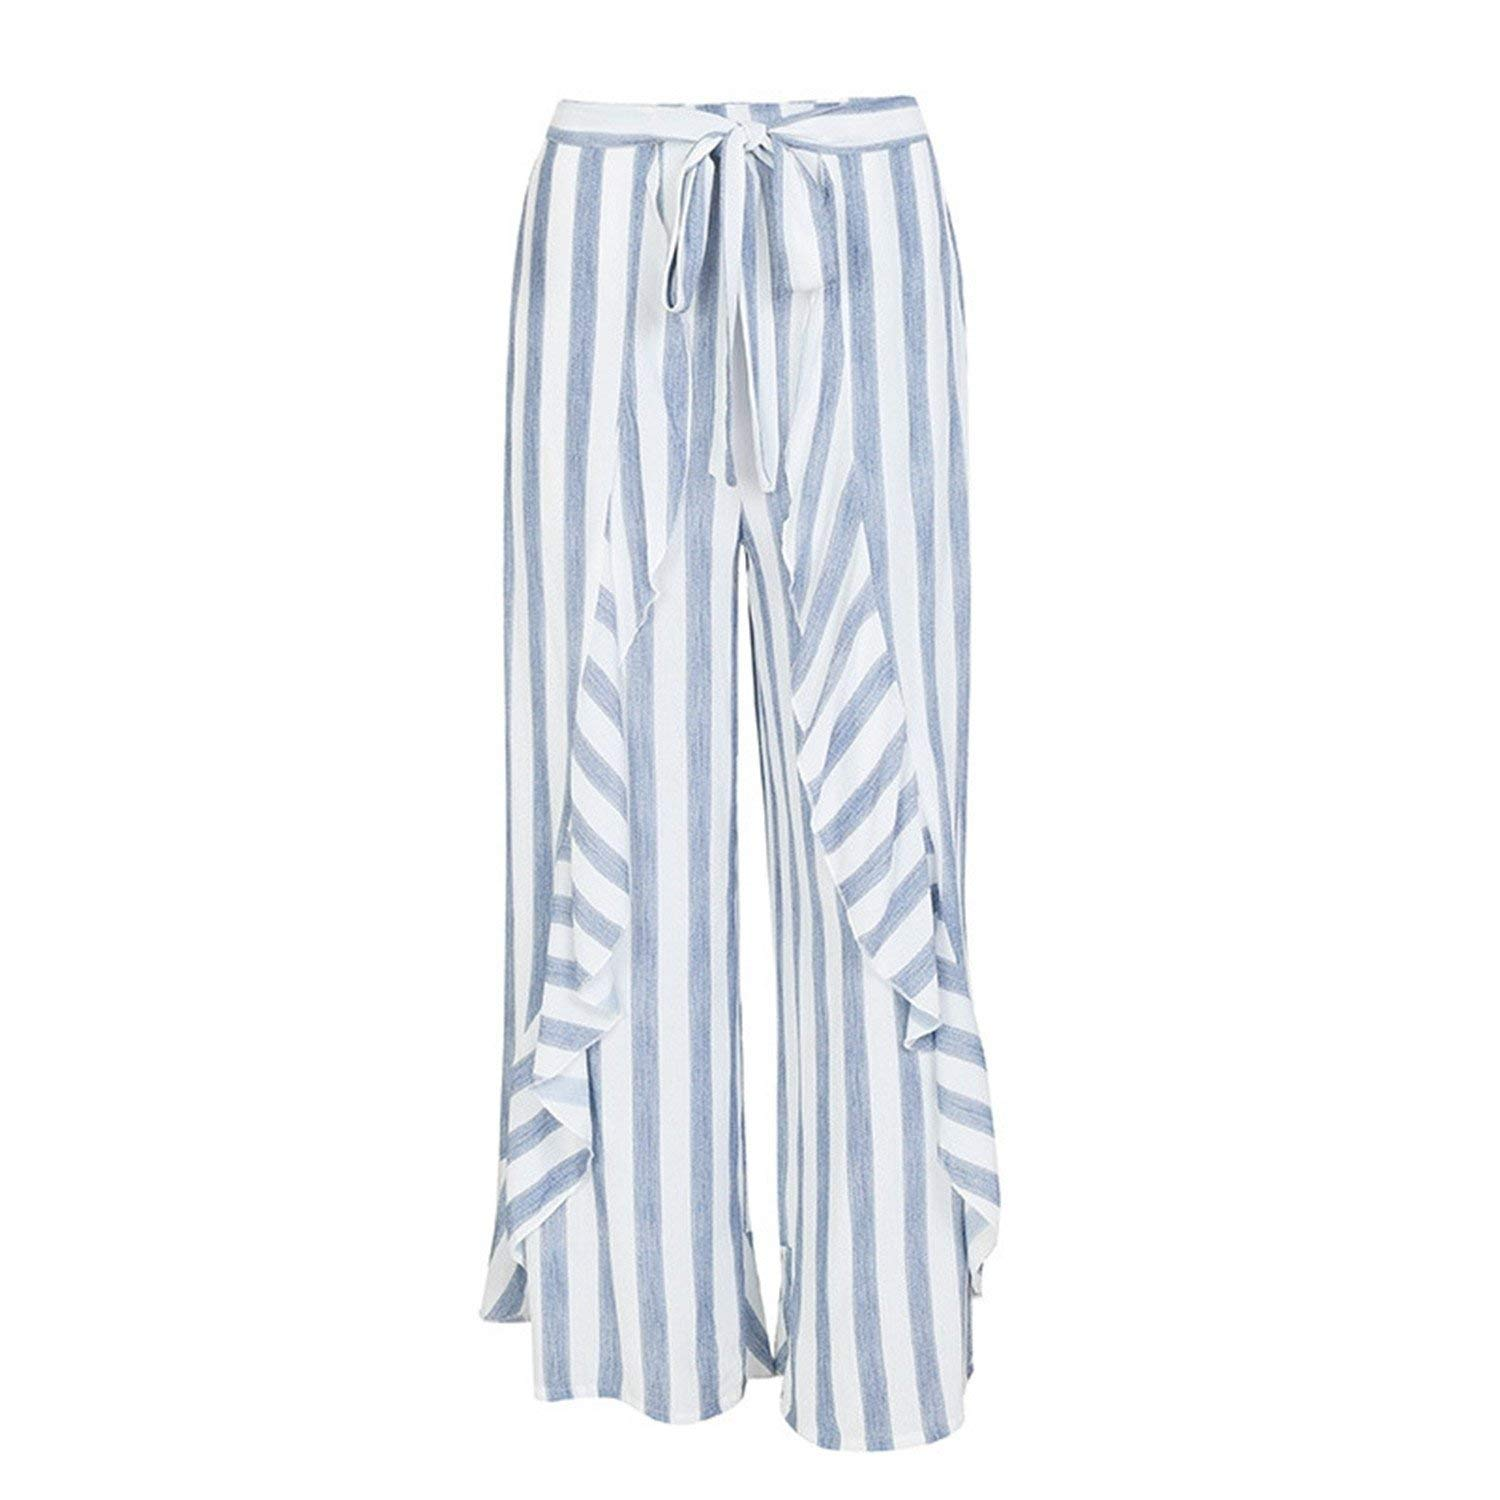 77ee768e01e Get Quotations · Dorathywatm Stripe Split Wide Leg Pants Women Bottom Sash  Ruffle High Waist Trousers Summer Beach Casual